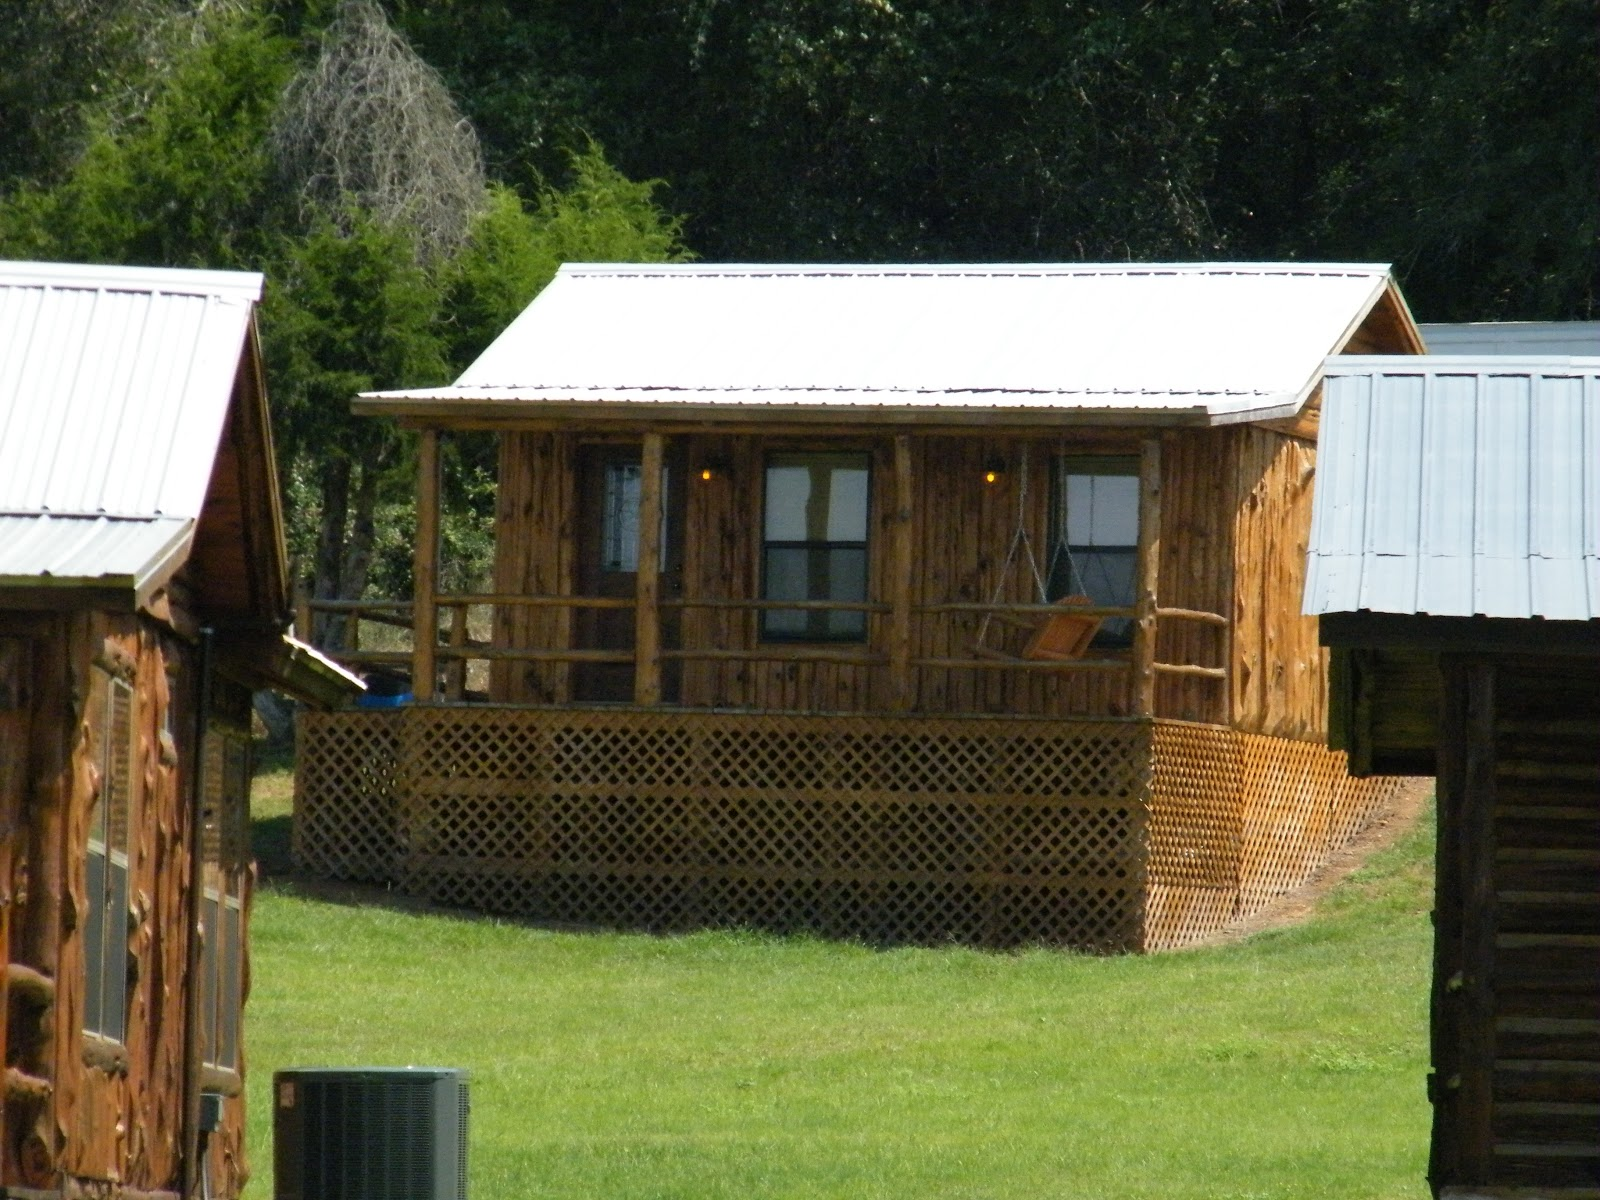 Texas container homes jesse c smith jr consultant navarro log homes - Container home builders in texas ...